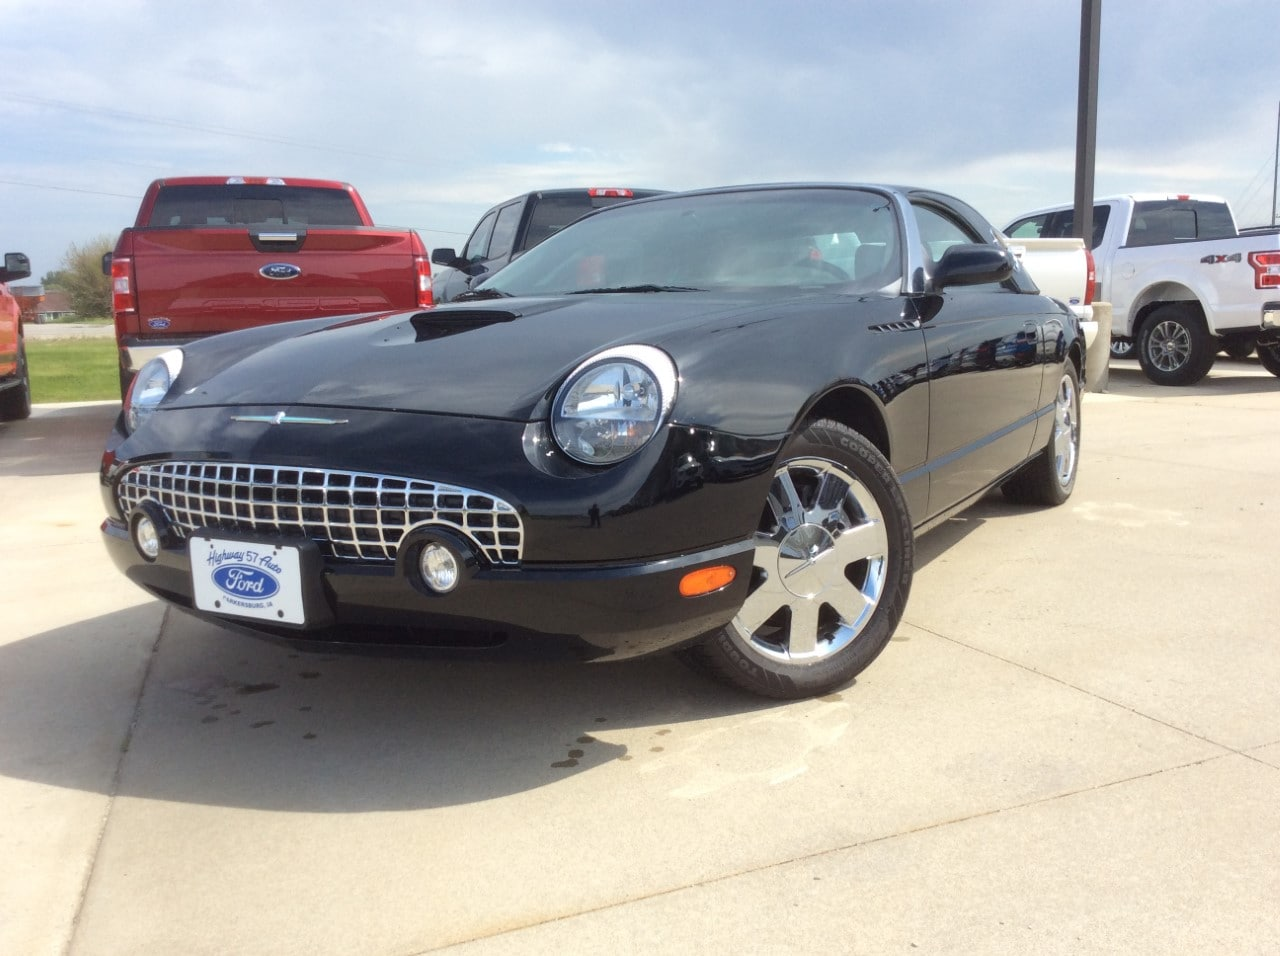 2002 Ford Thunderbird Removable Top Premium Convertible